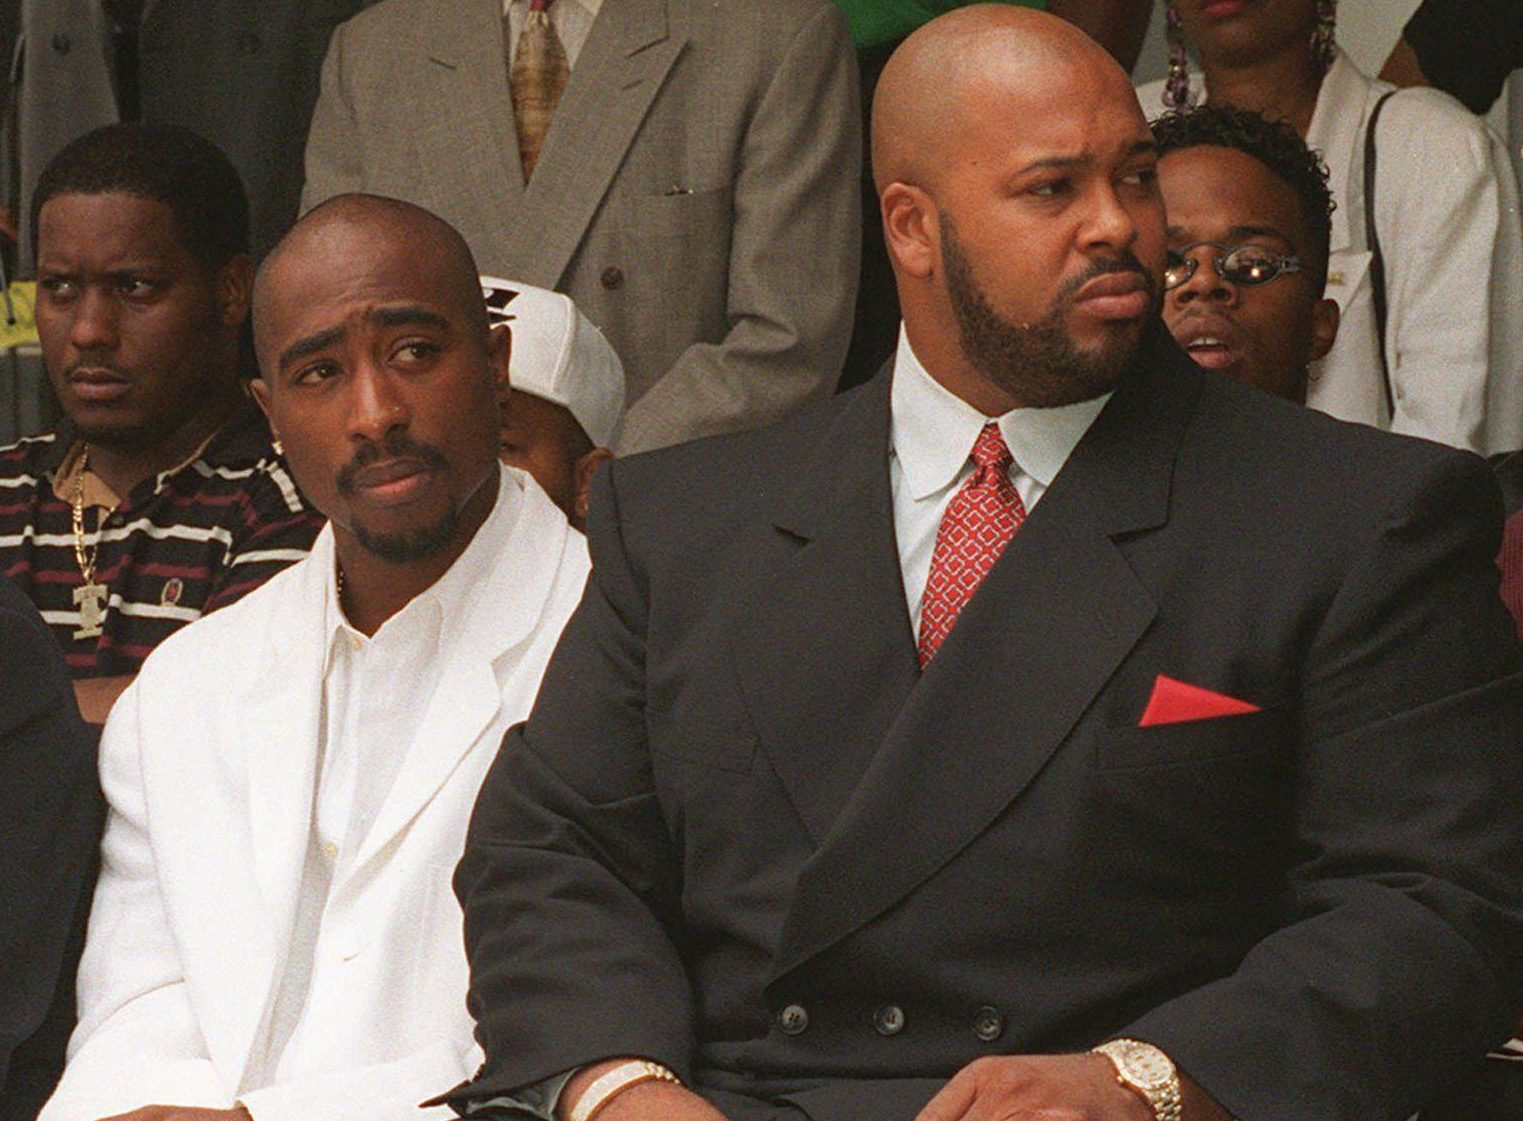 who is suge knight